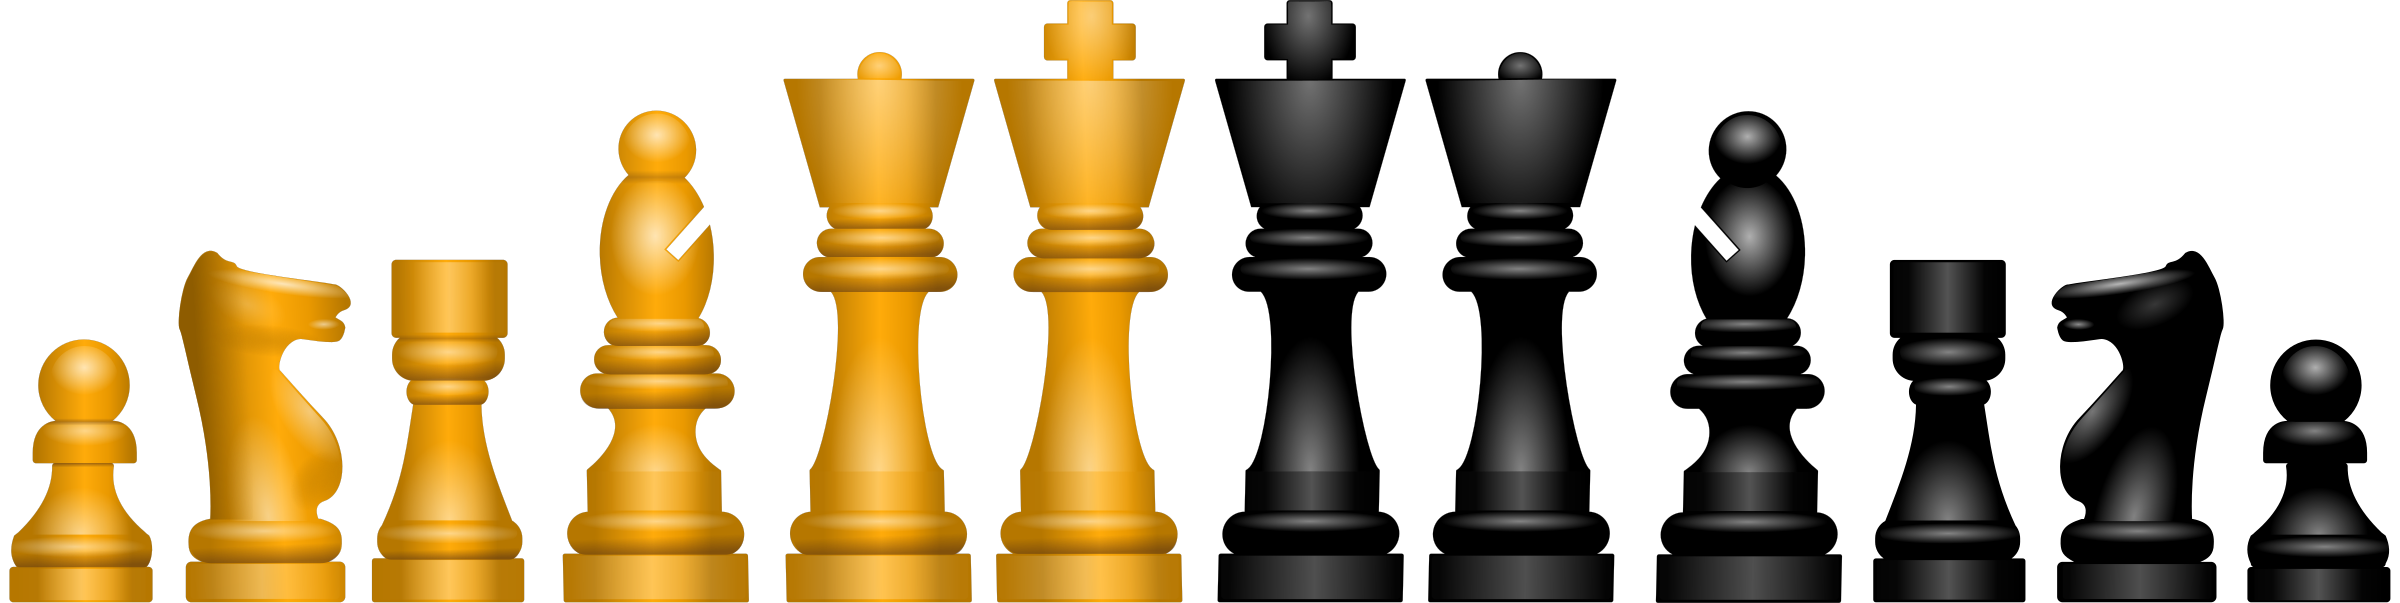 Chess clipart #4, Download drawings